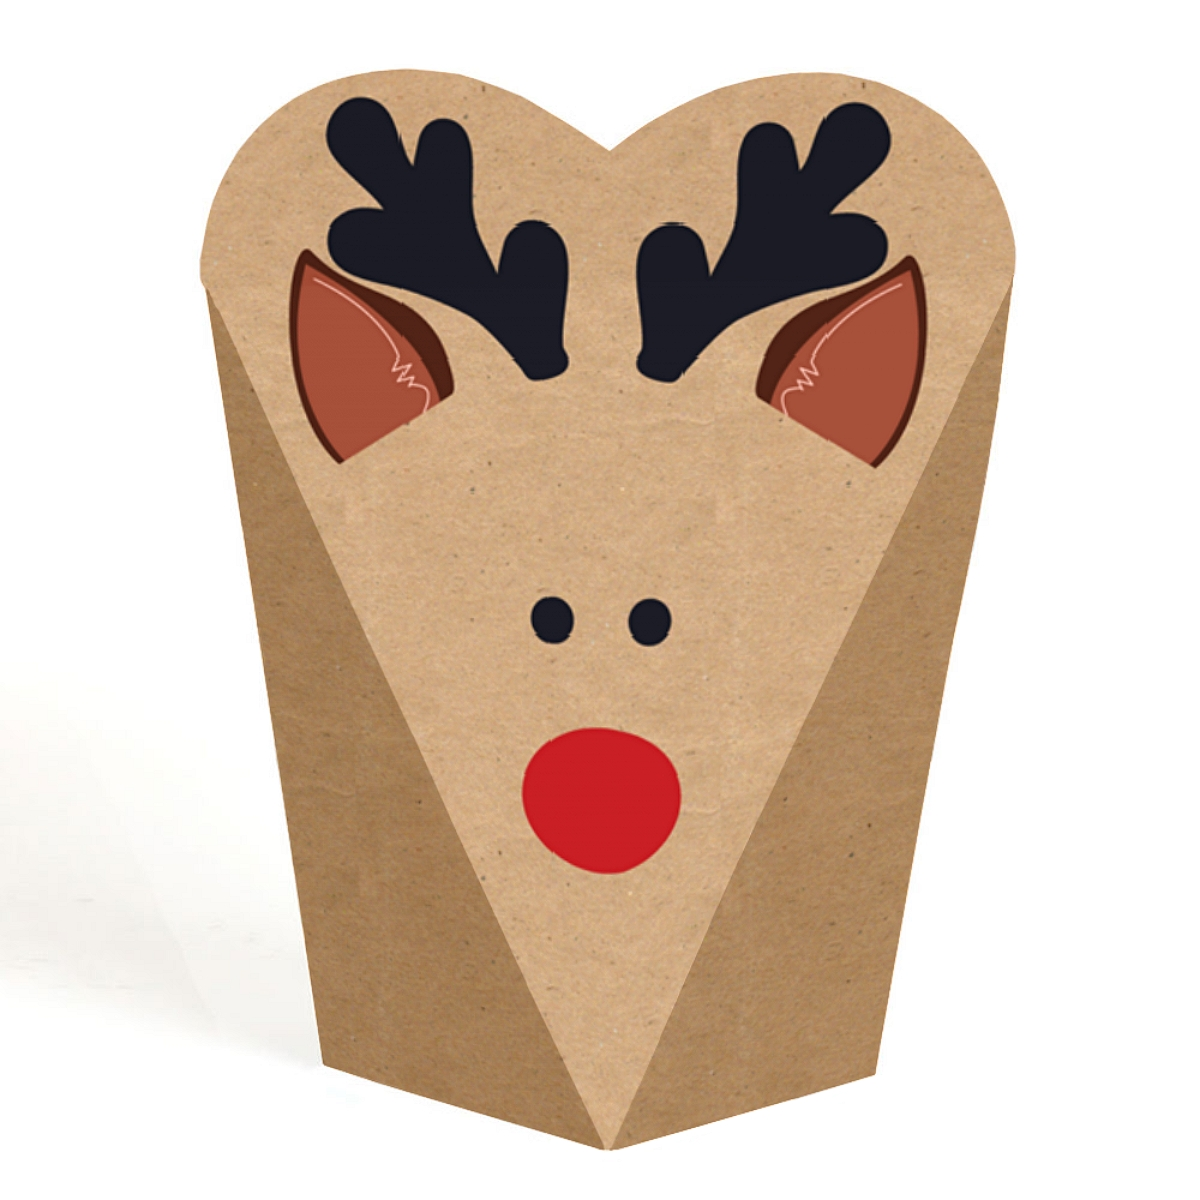 Prancing Plaid - Christmas & Holiday Party Favors - Gift Favor Boxes for Women & Kids - Set of 12